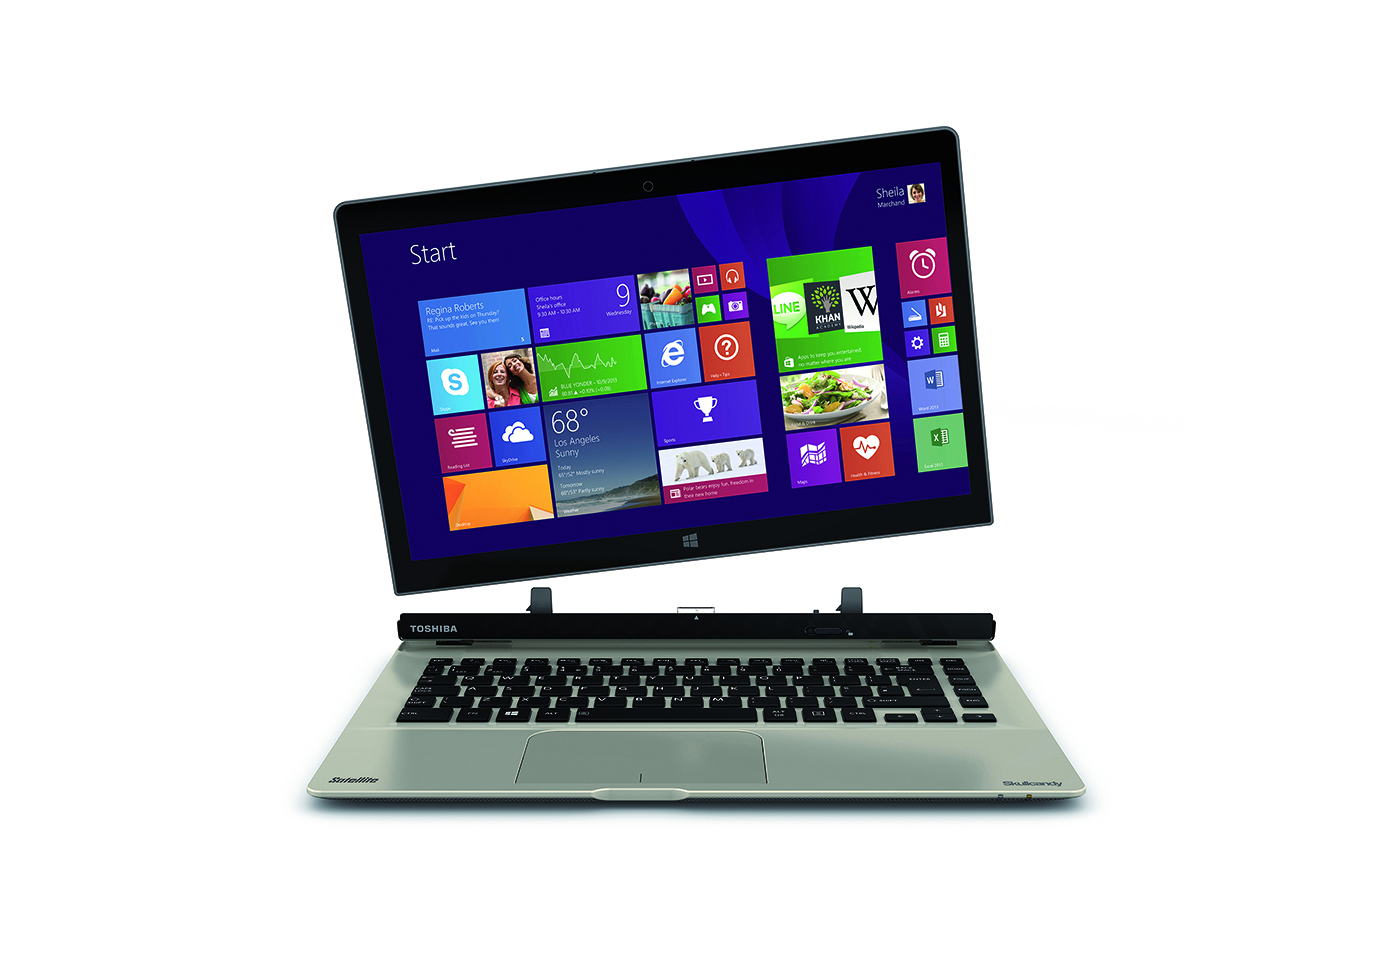 Toshiba Satellite Click 2: Is It Good for Business?